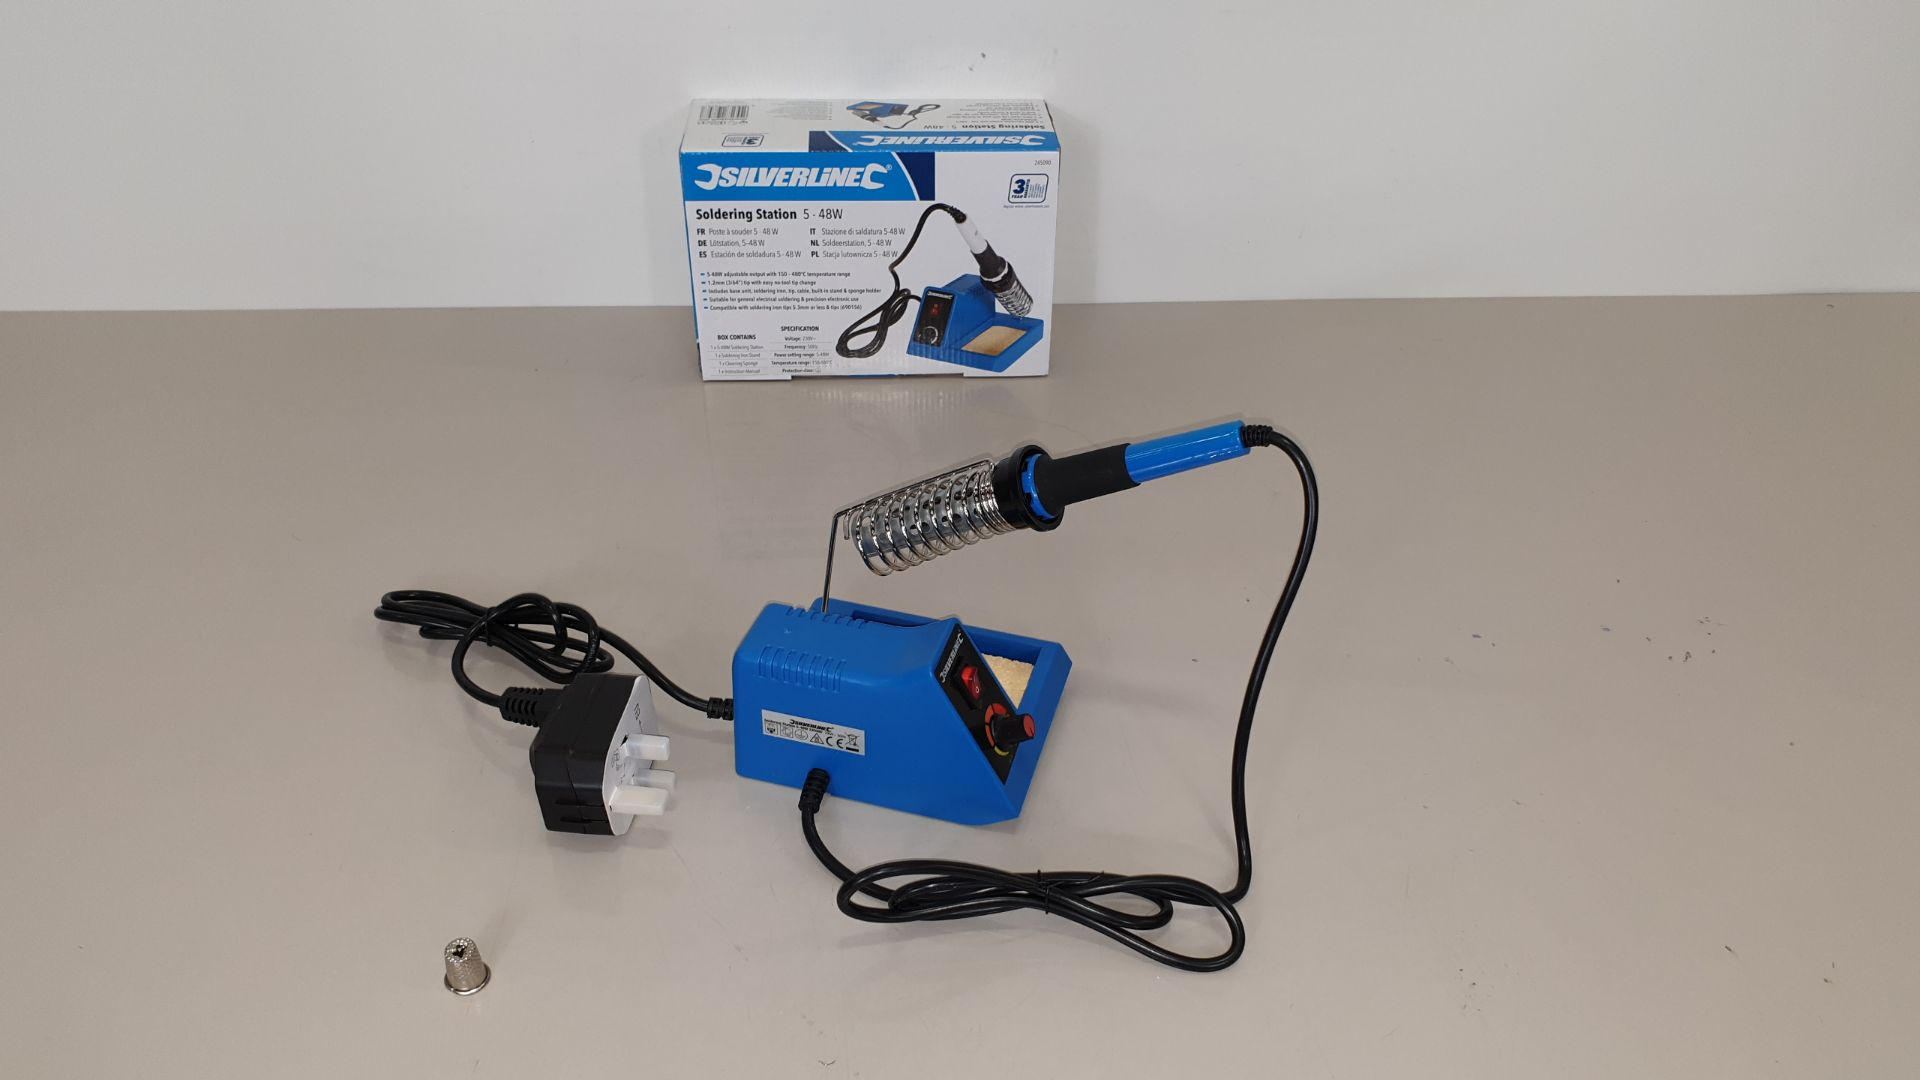 Lot 234 - 20 X BRAND NEW SILVERLINE SOLDERING STATIONS 5-48W (PROD CODE 245090) - TRADE PRICE £31.34 EACH (EXC